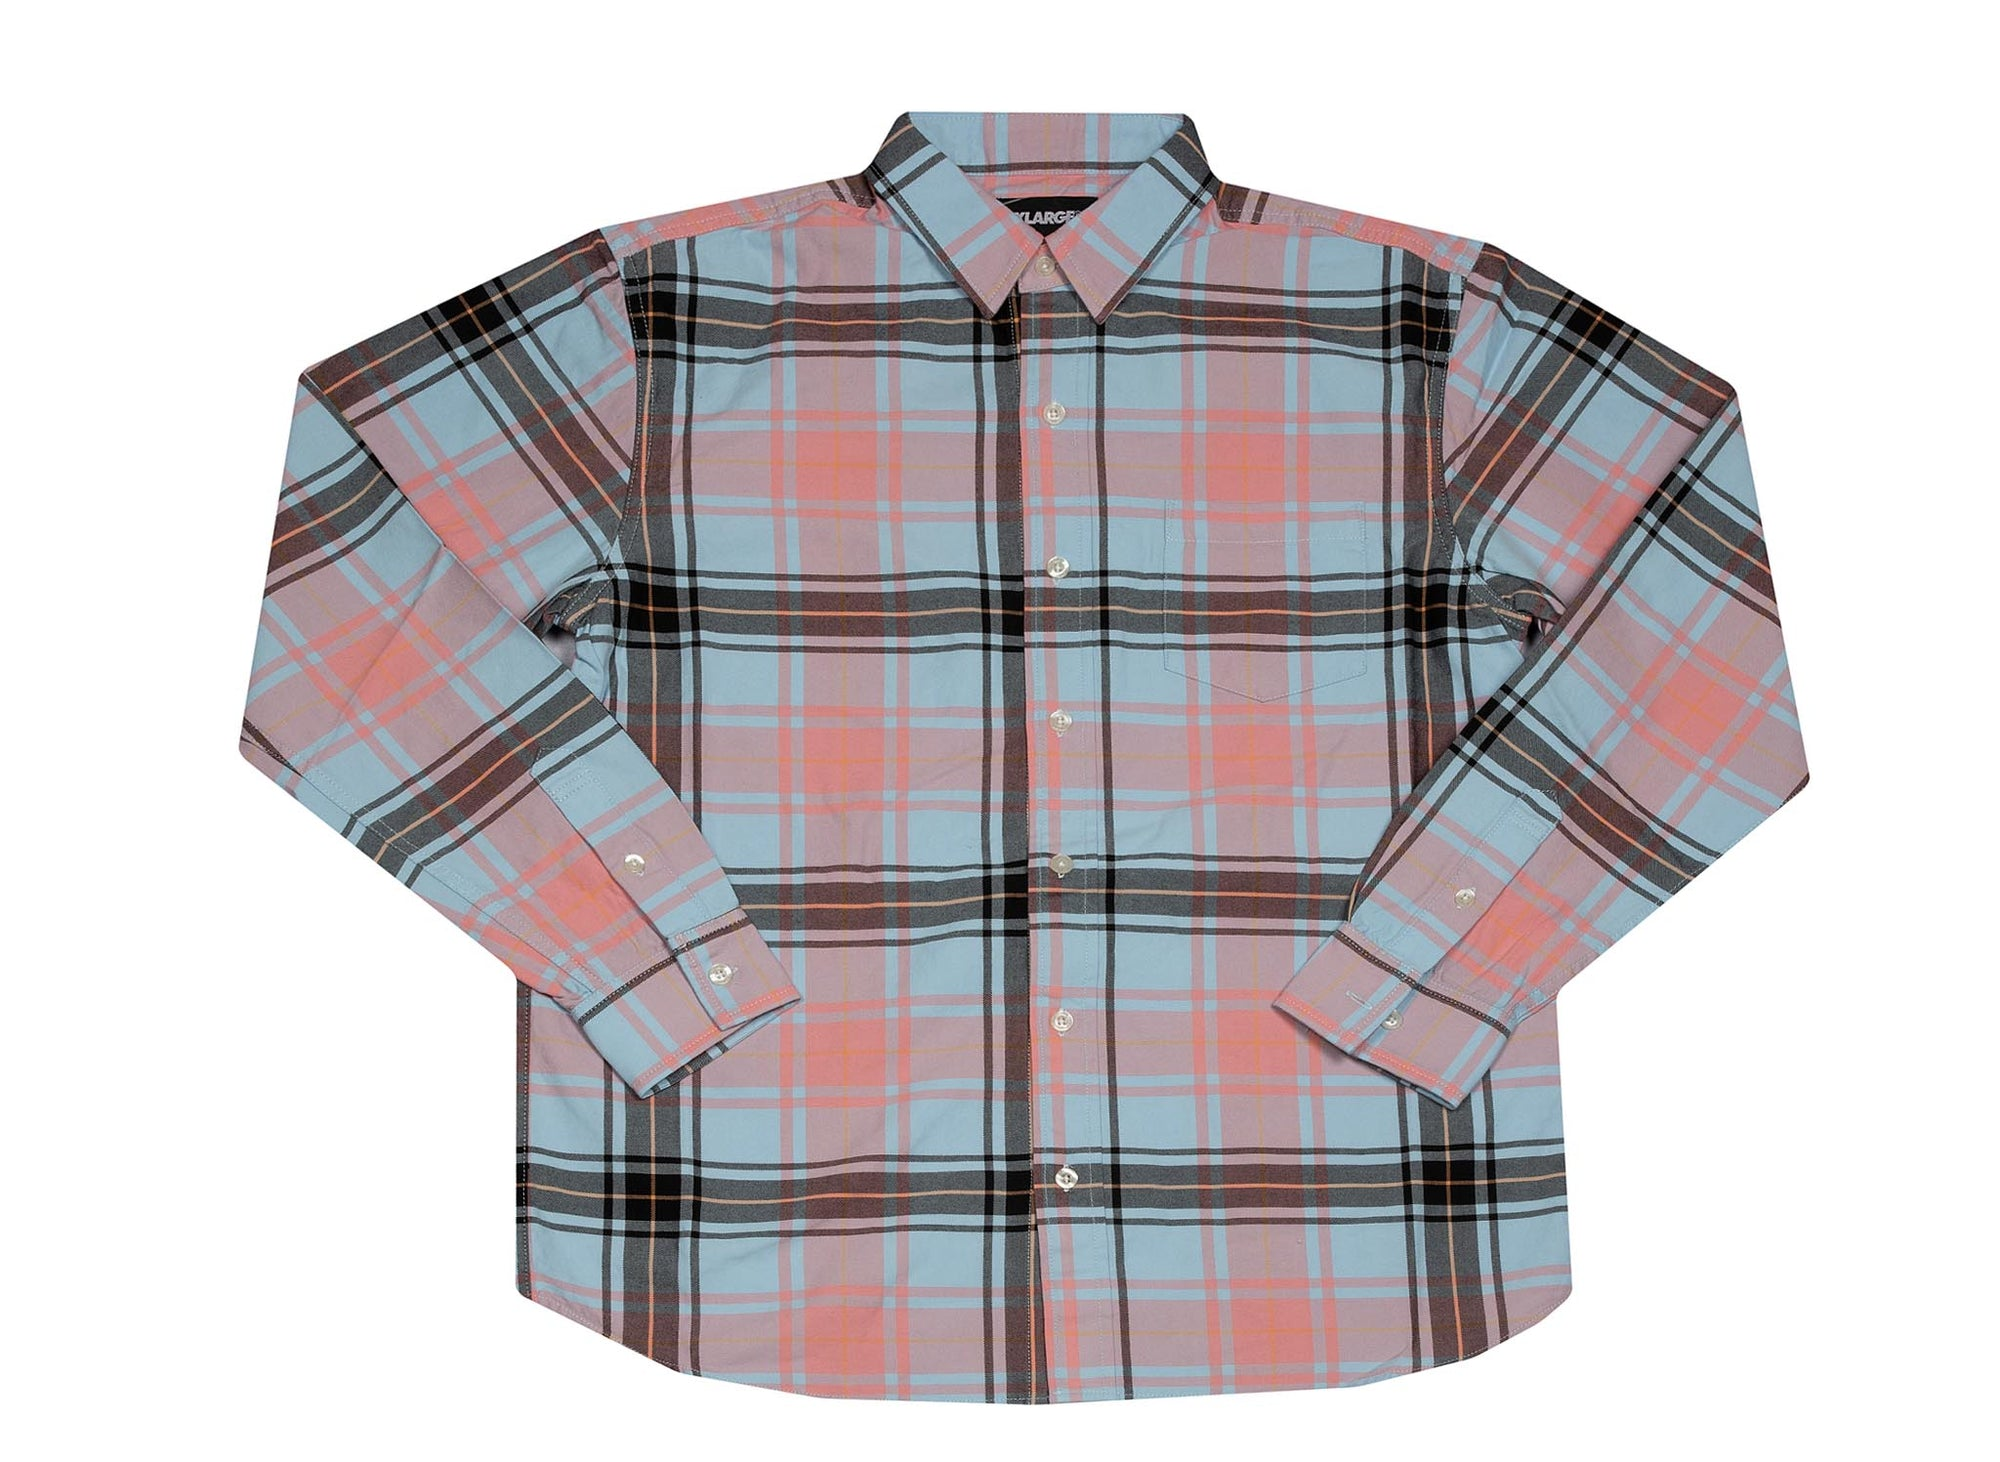 X-LARGE PLAID PATTERN SHIRT